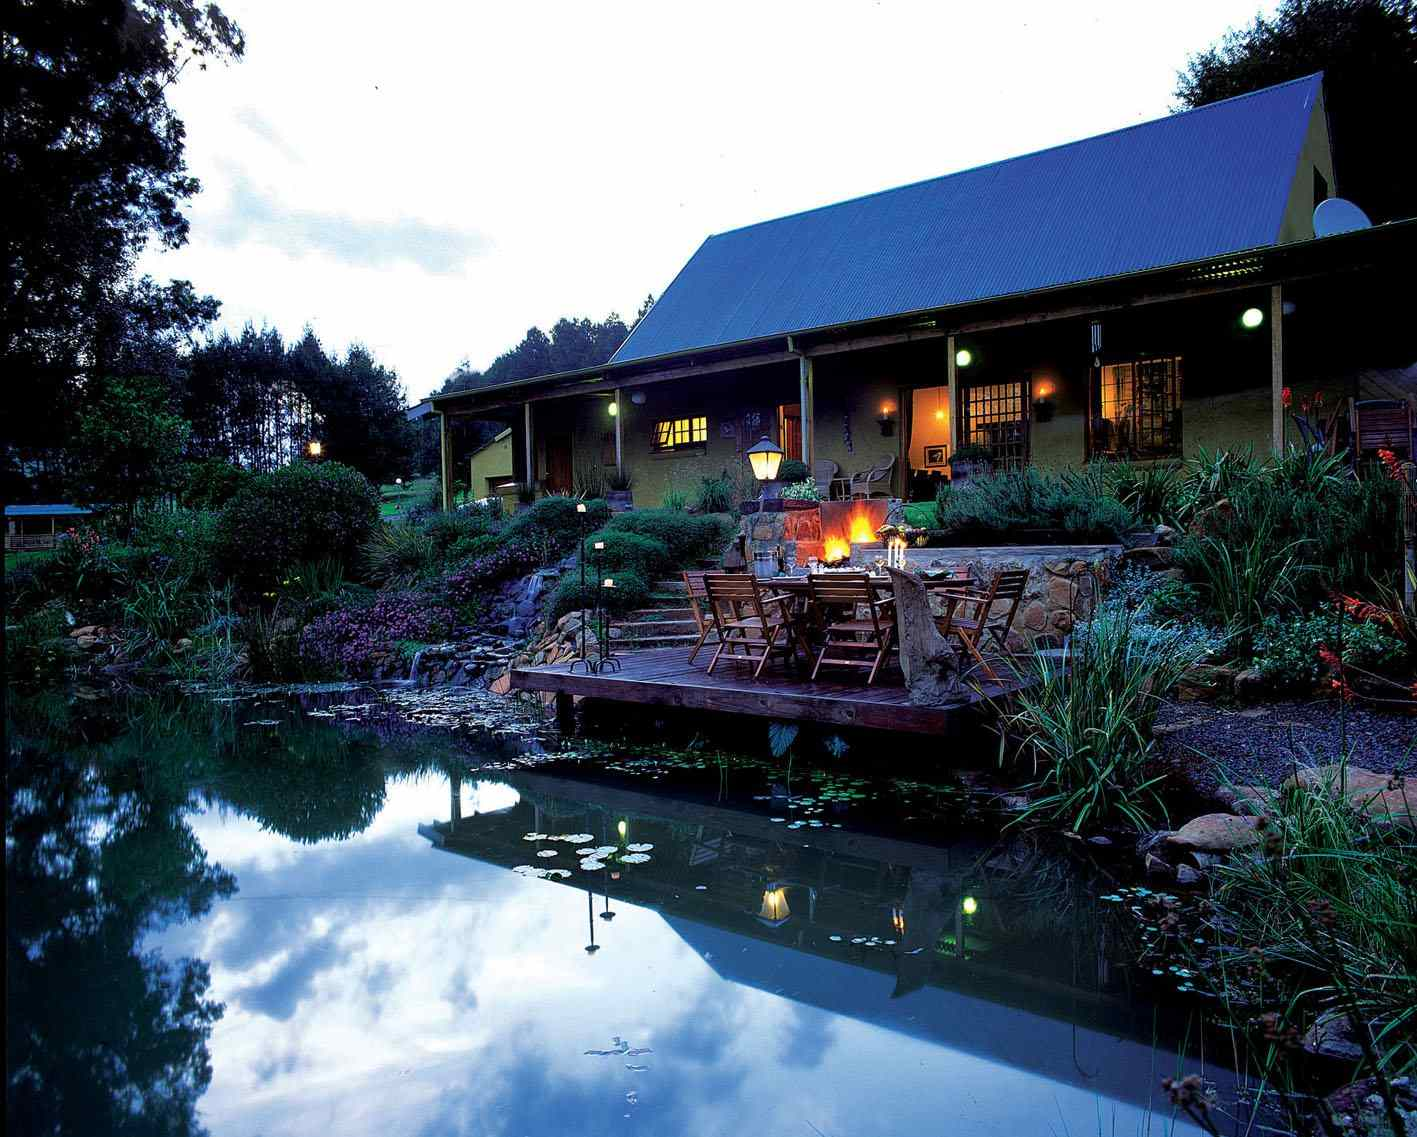 stonecutters lodge  dullstroom  south africa